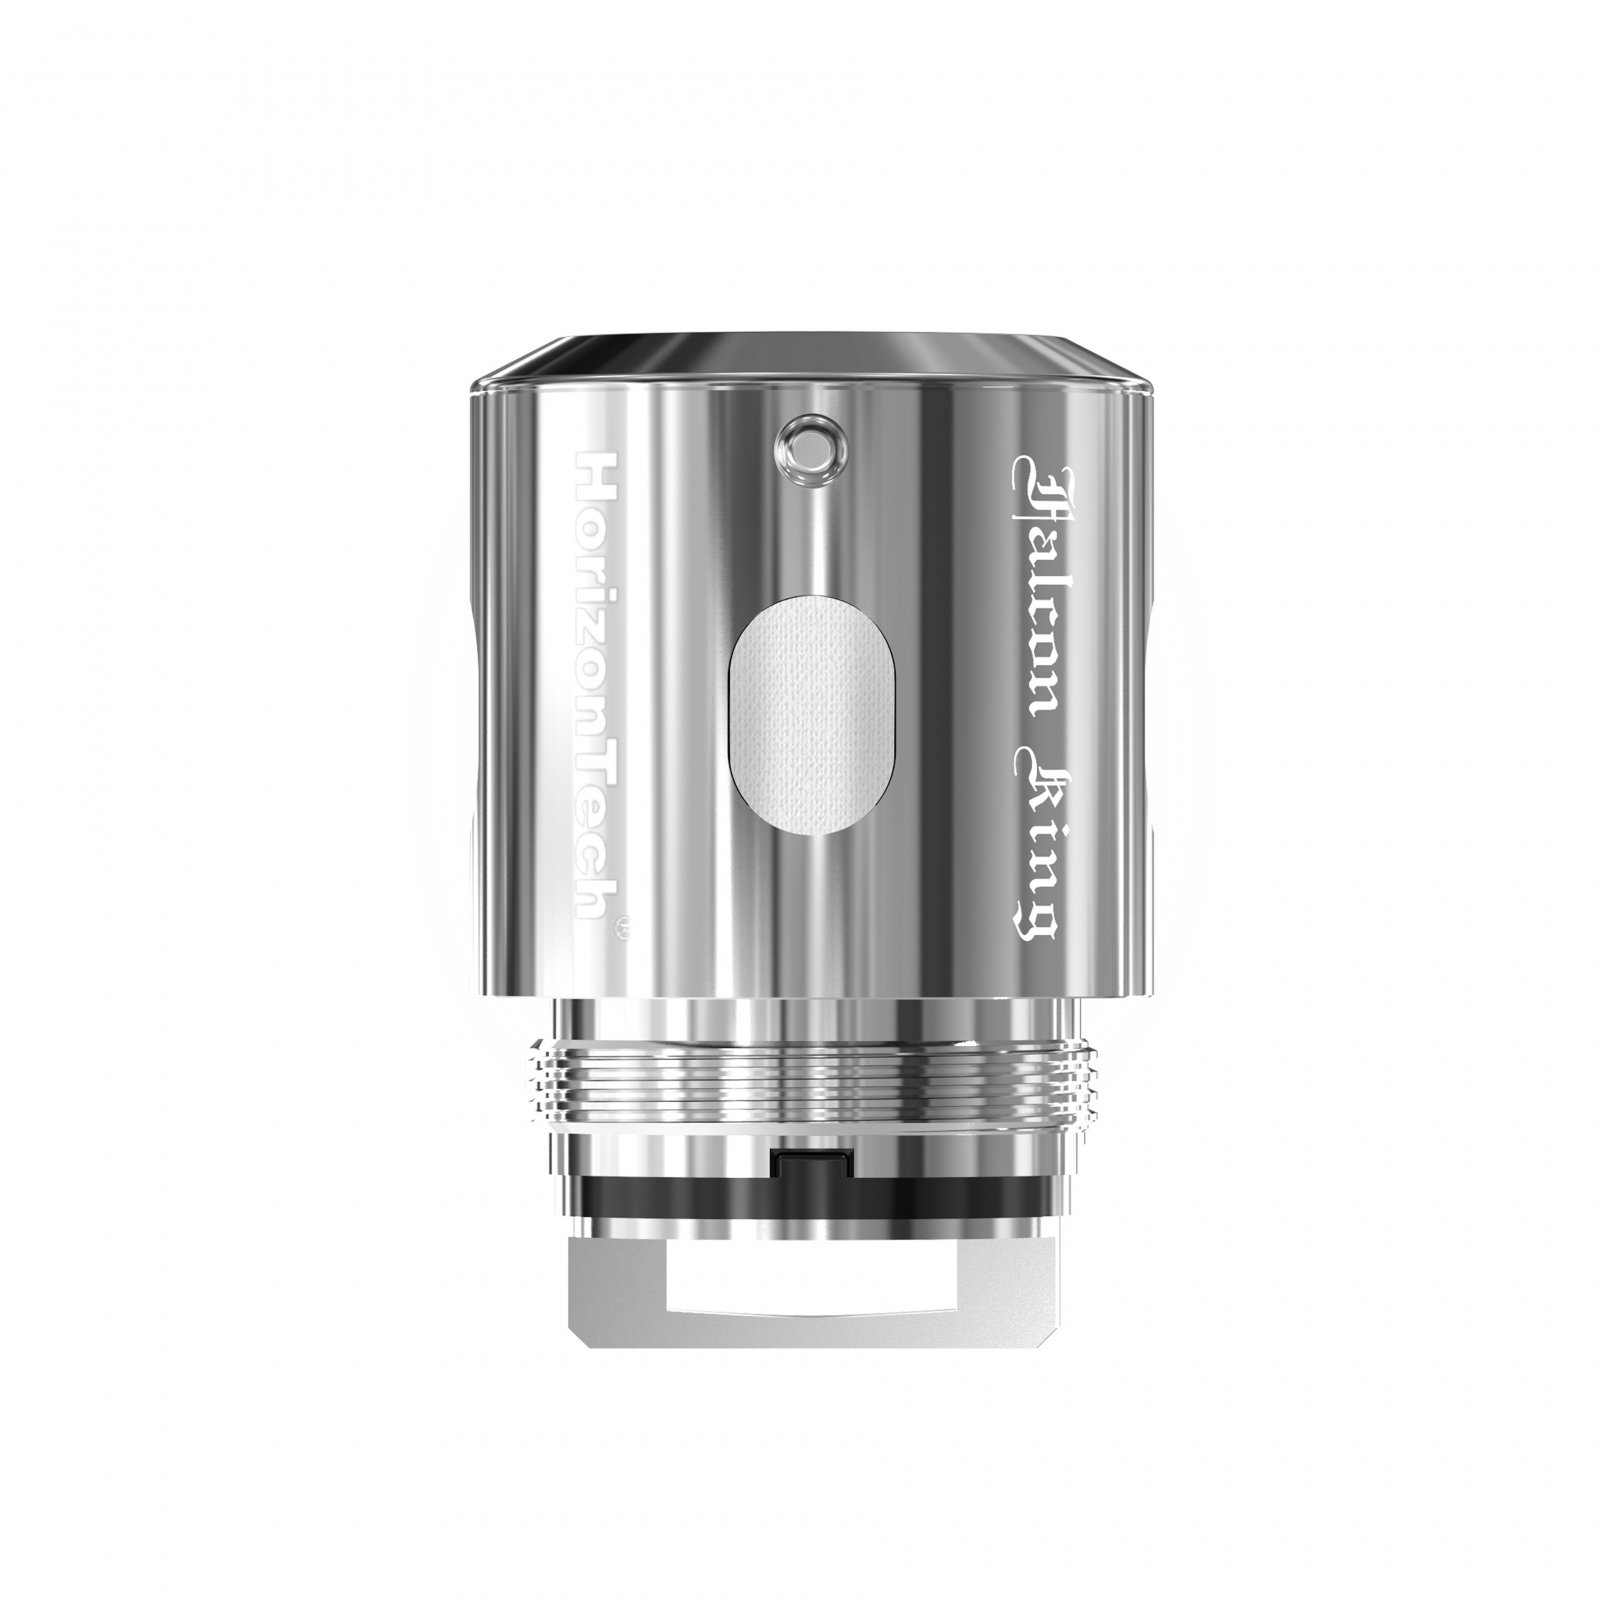 Horizon Tech Falcon King Replacement Atomizer (Single)